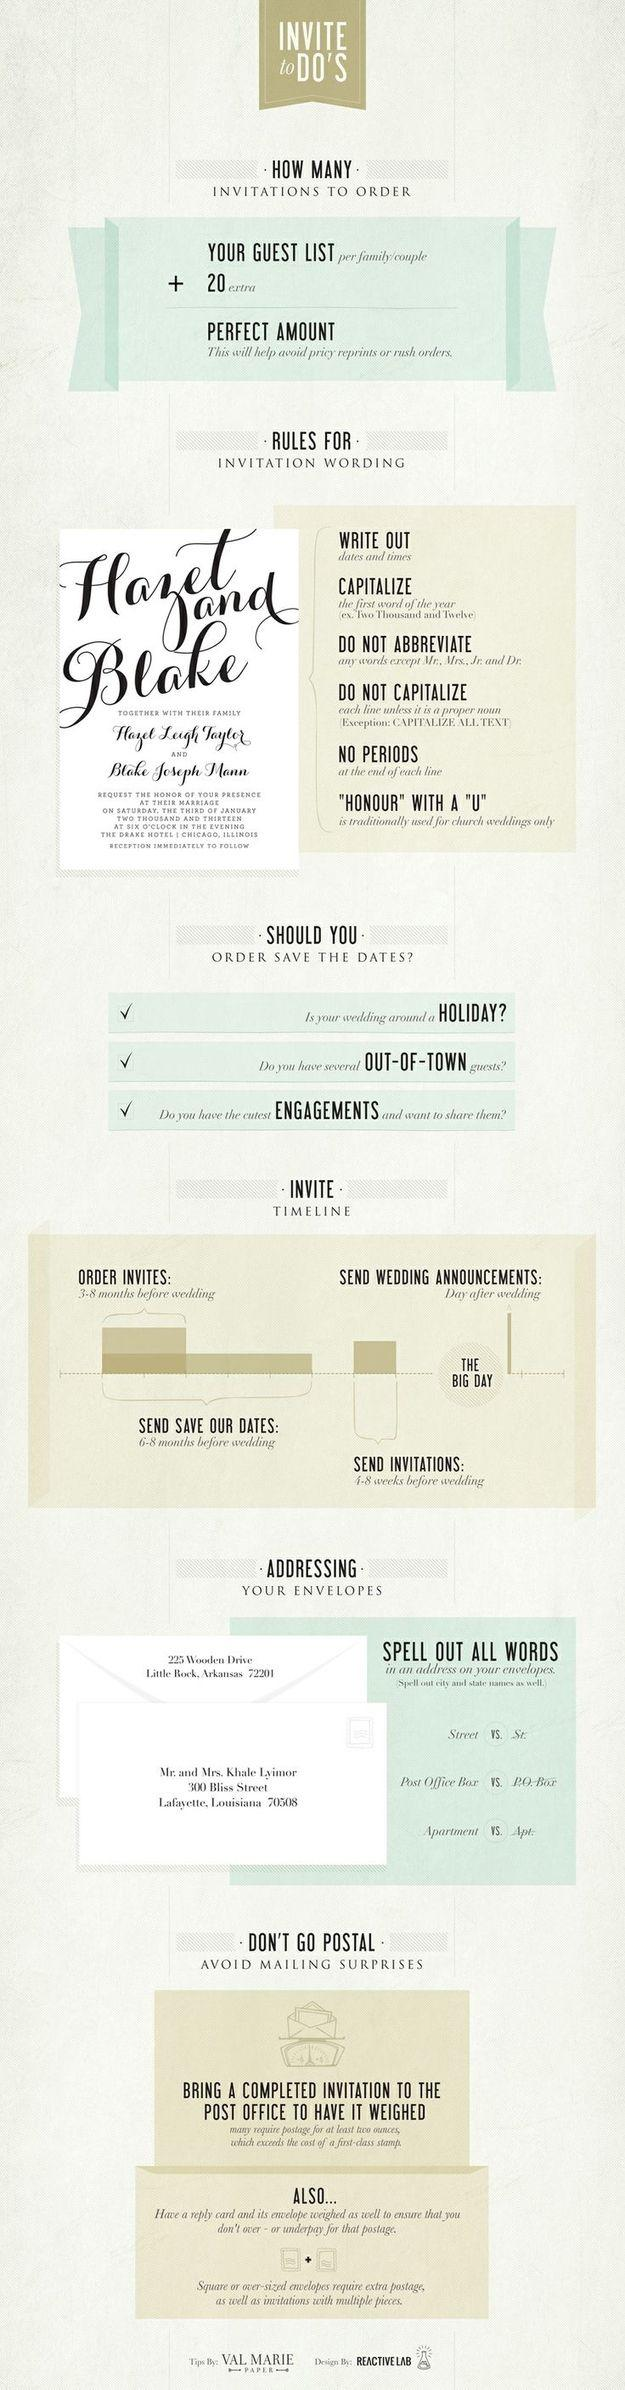 Hochzeit - These Diagrams Are Everything You Need To Plan Your Wedding